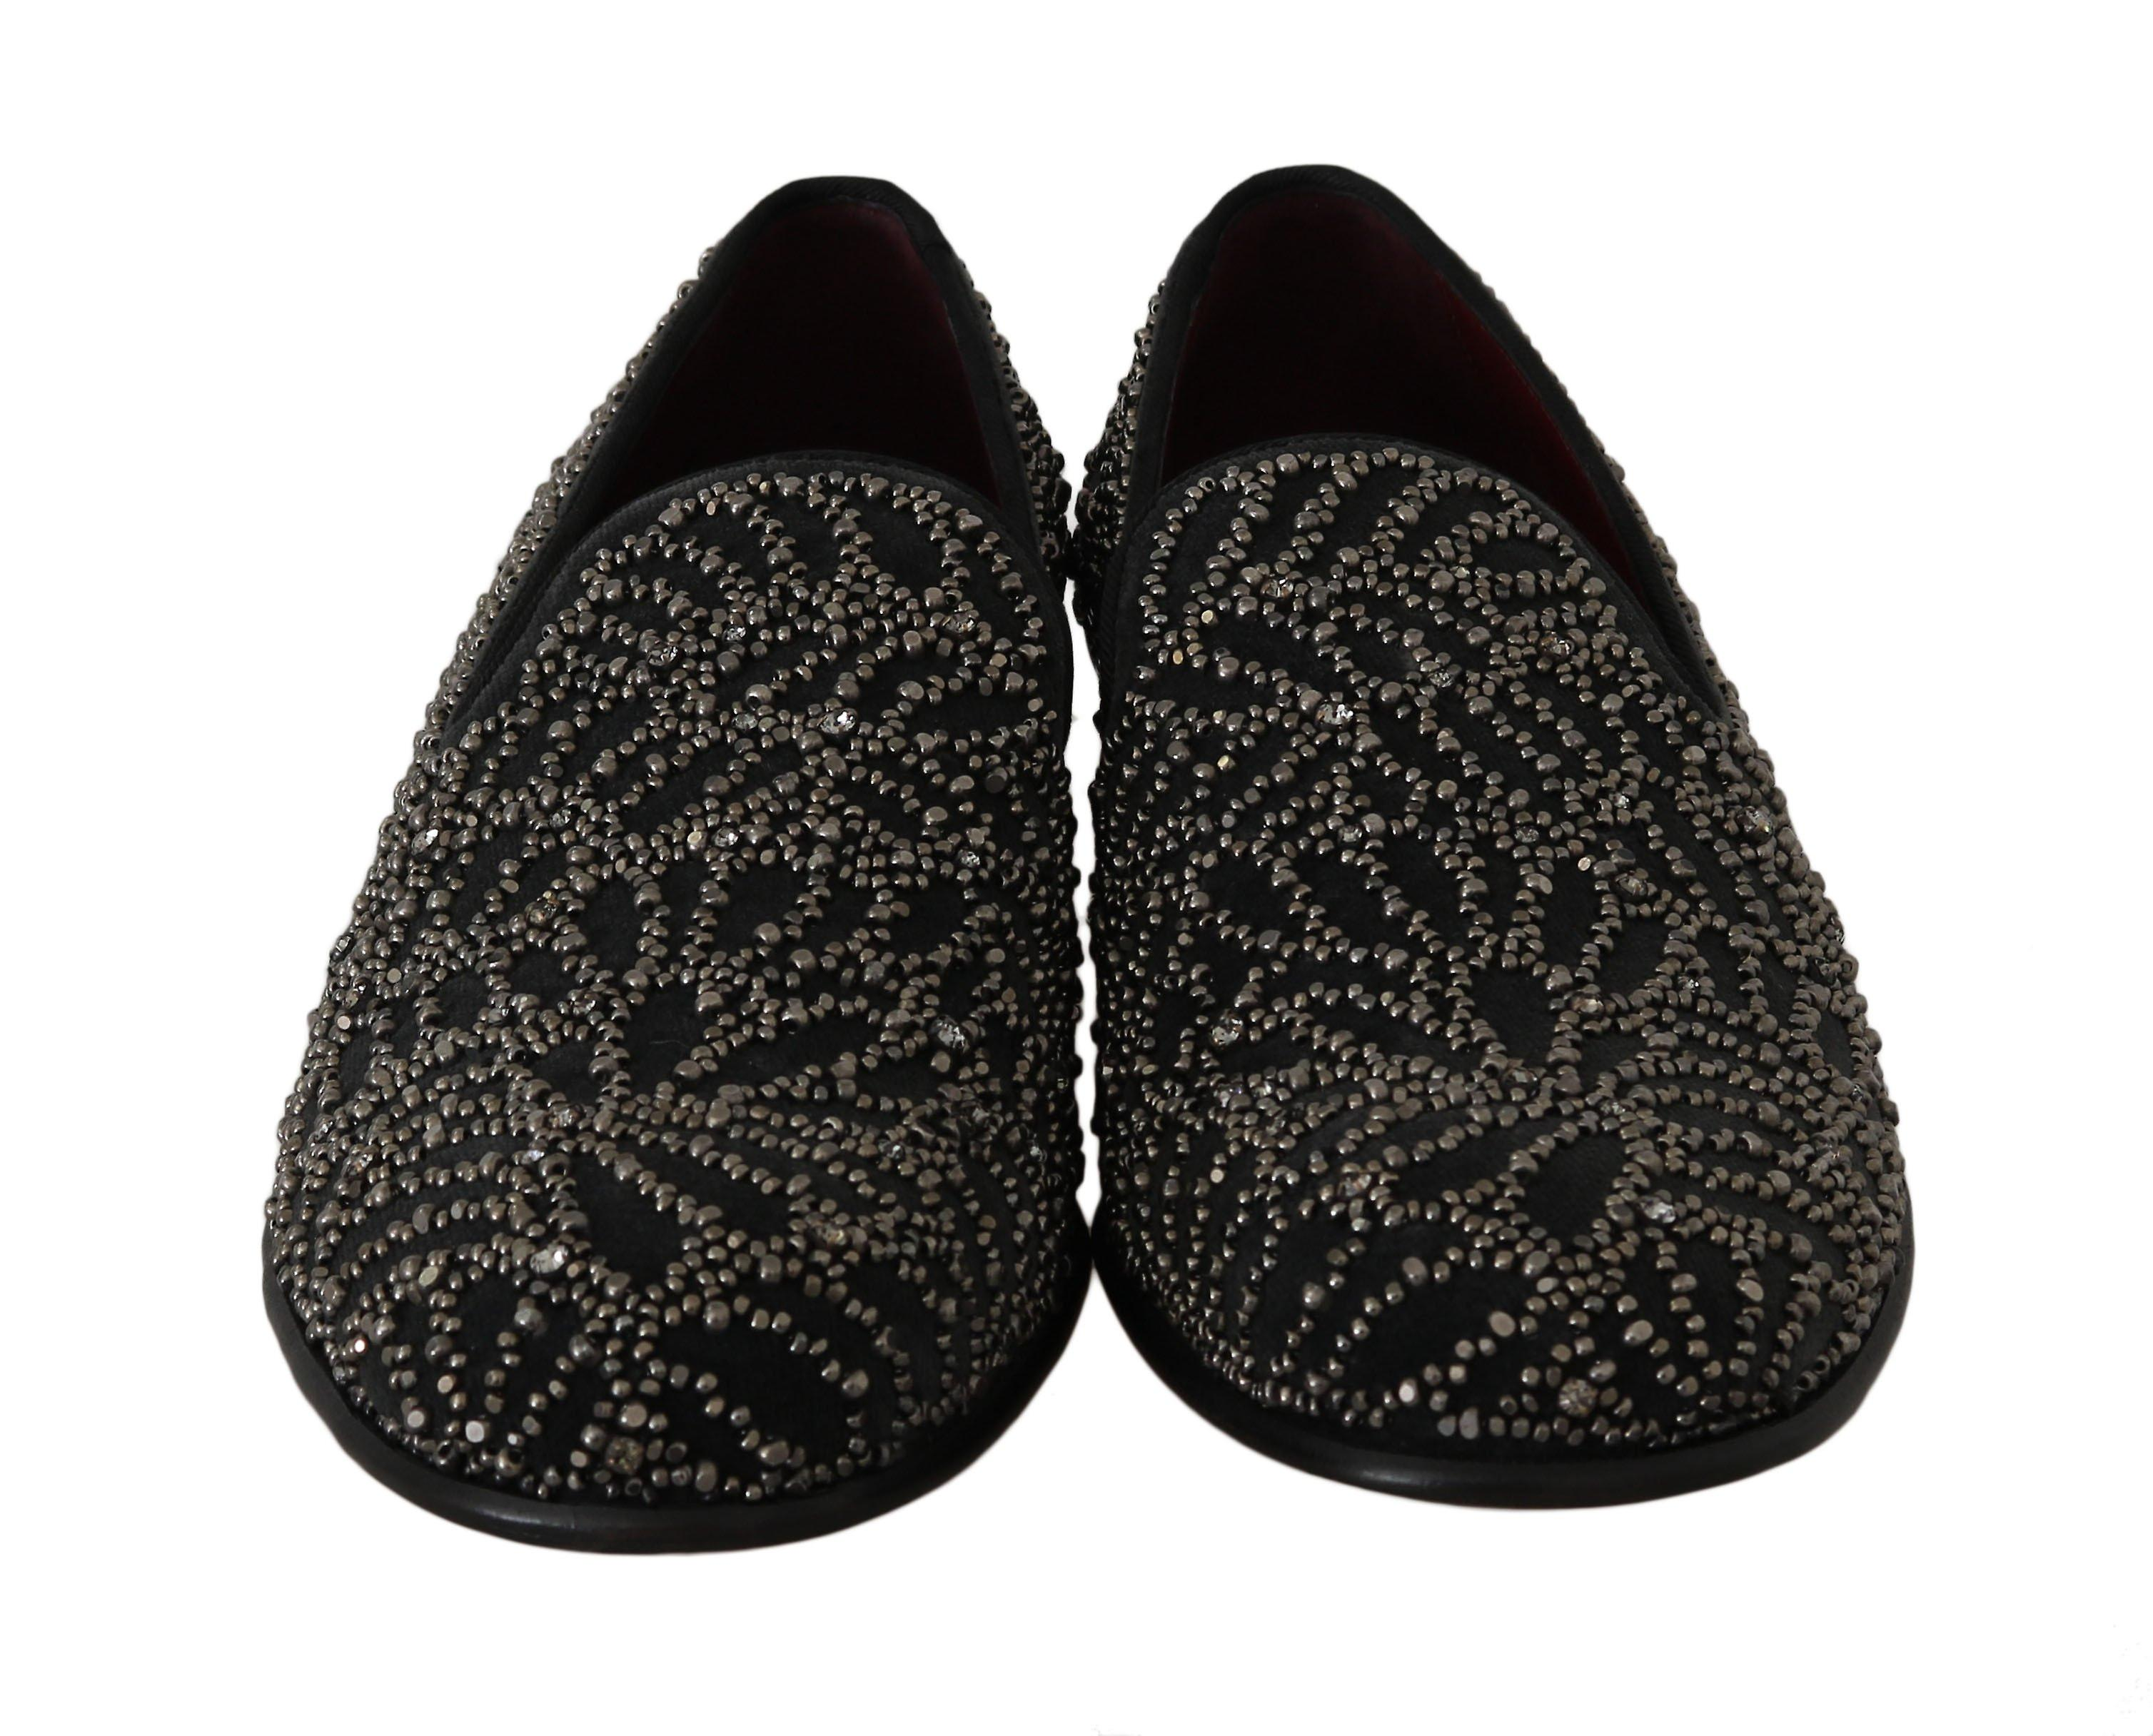 Dolce et Gabbana Black Velvet Crystal Beaded Loafers -- MV20627312